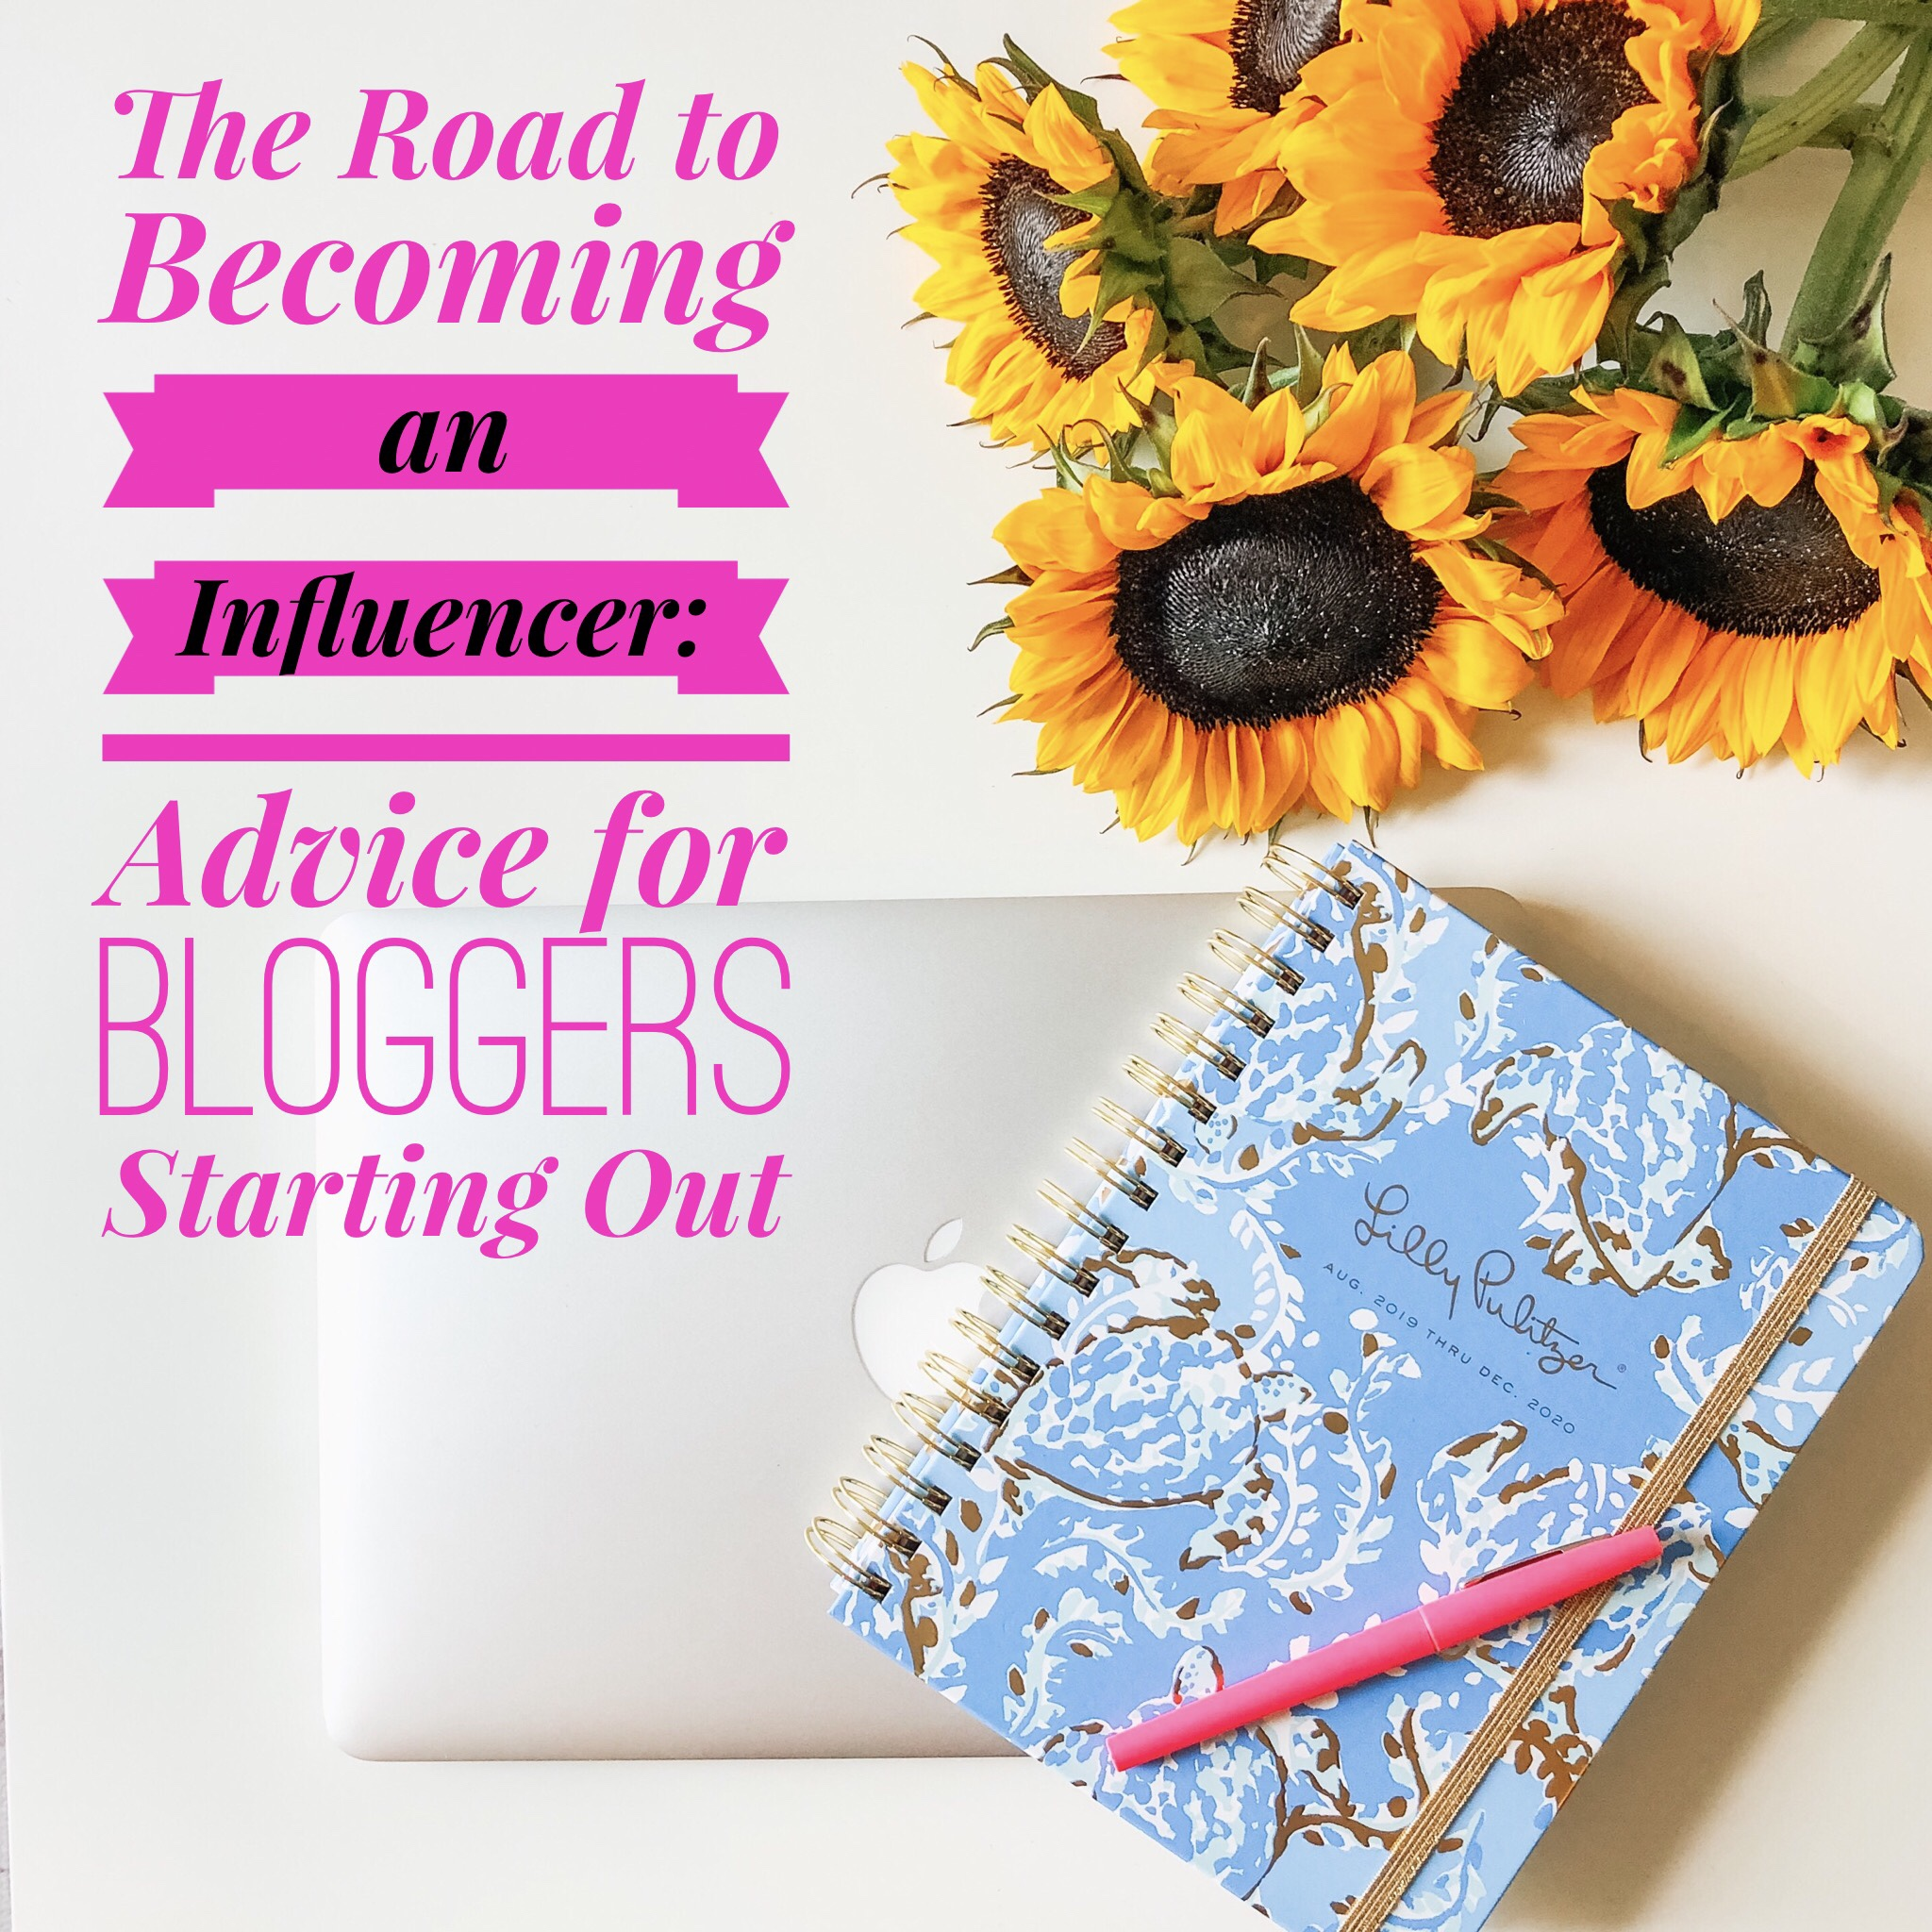 LIKEtoKNOW.it and The Road to Becoming an Influencer  Advice for Bloggers Starting Out